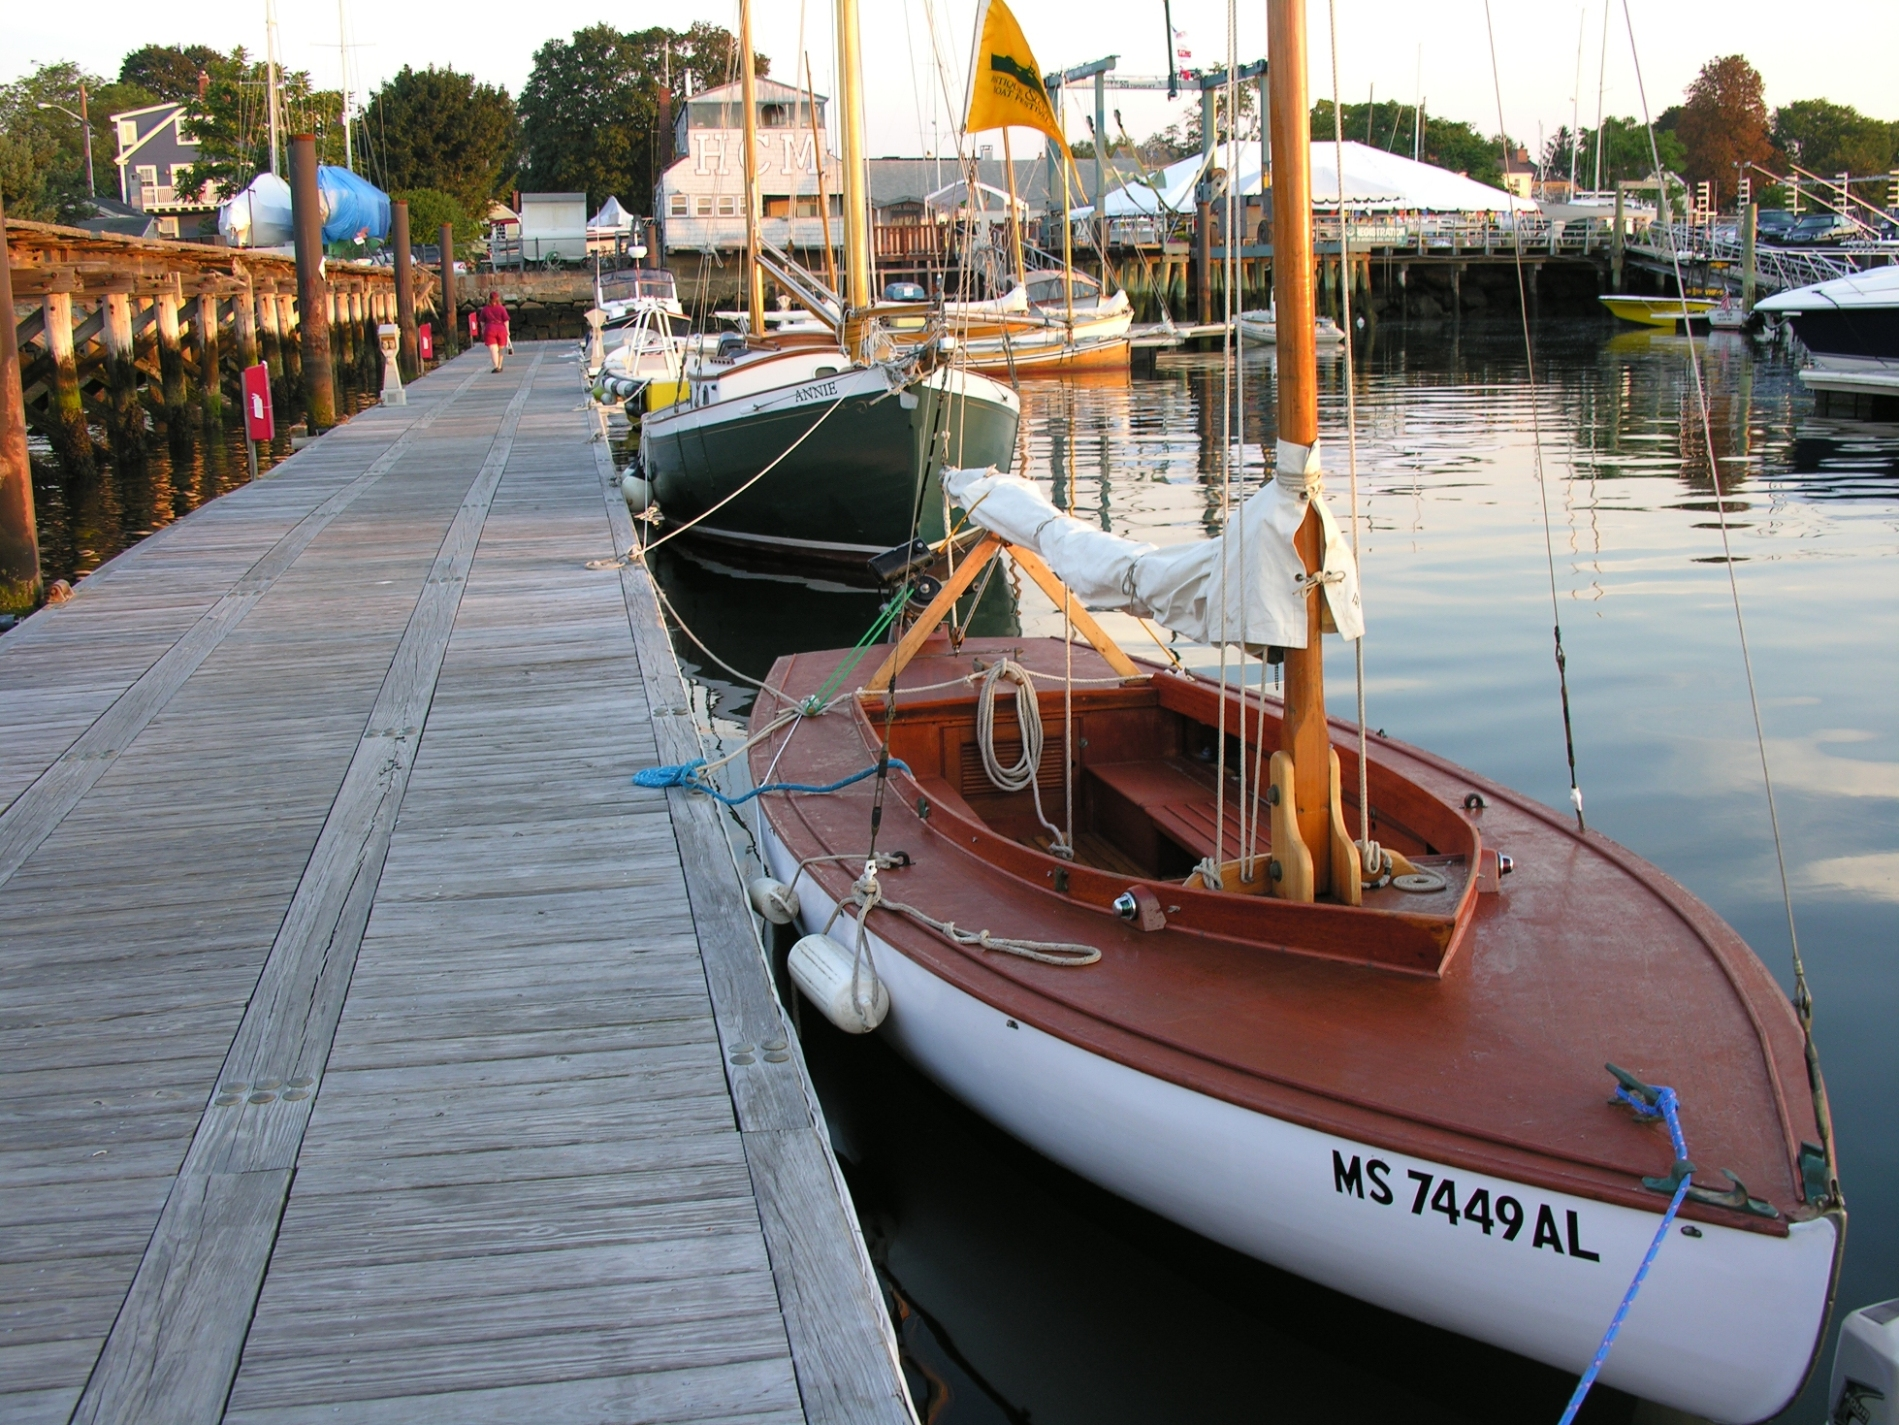 Antique and Classic Boat Festival